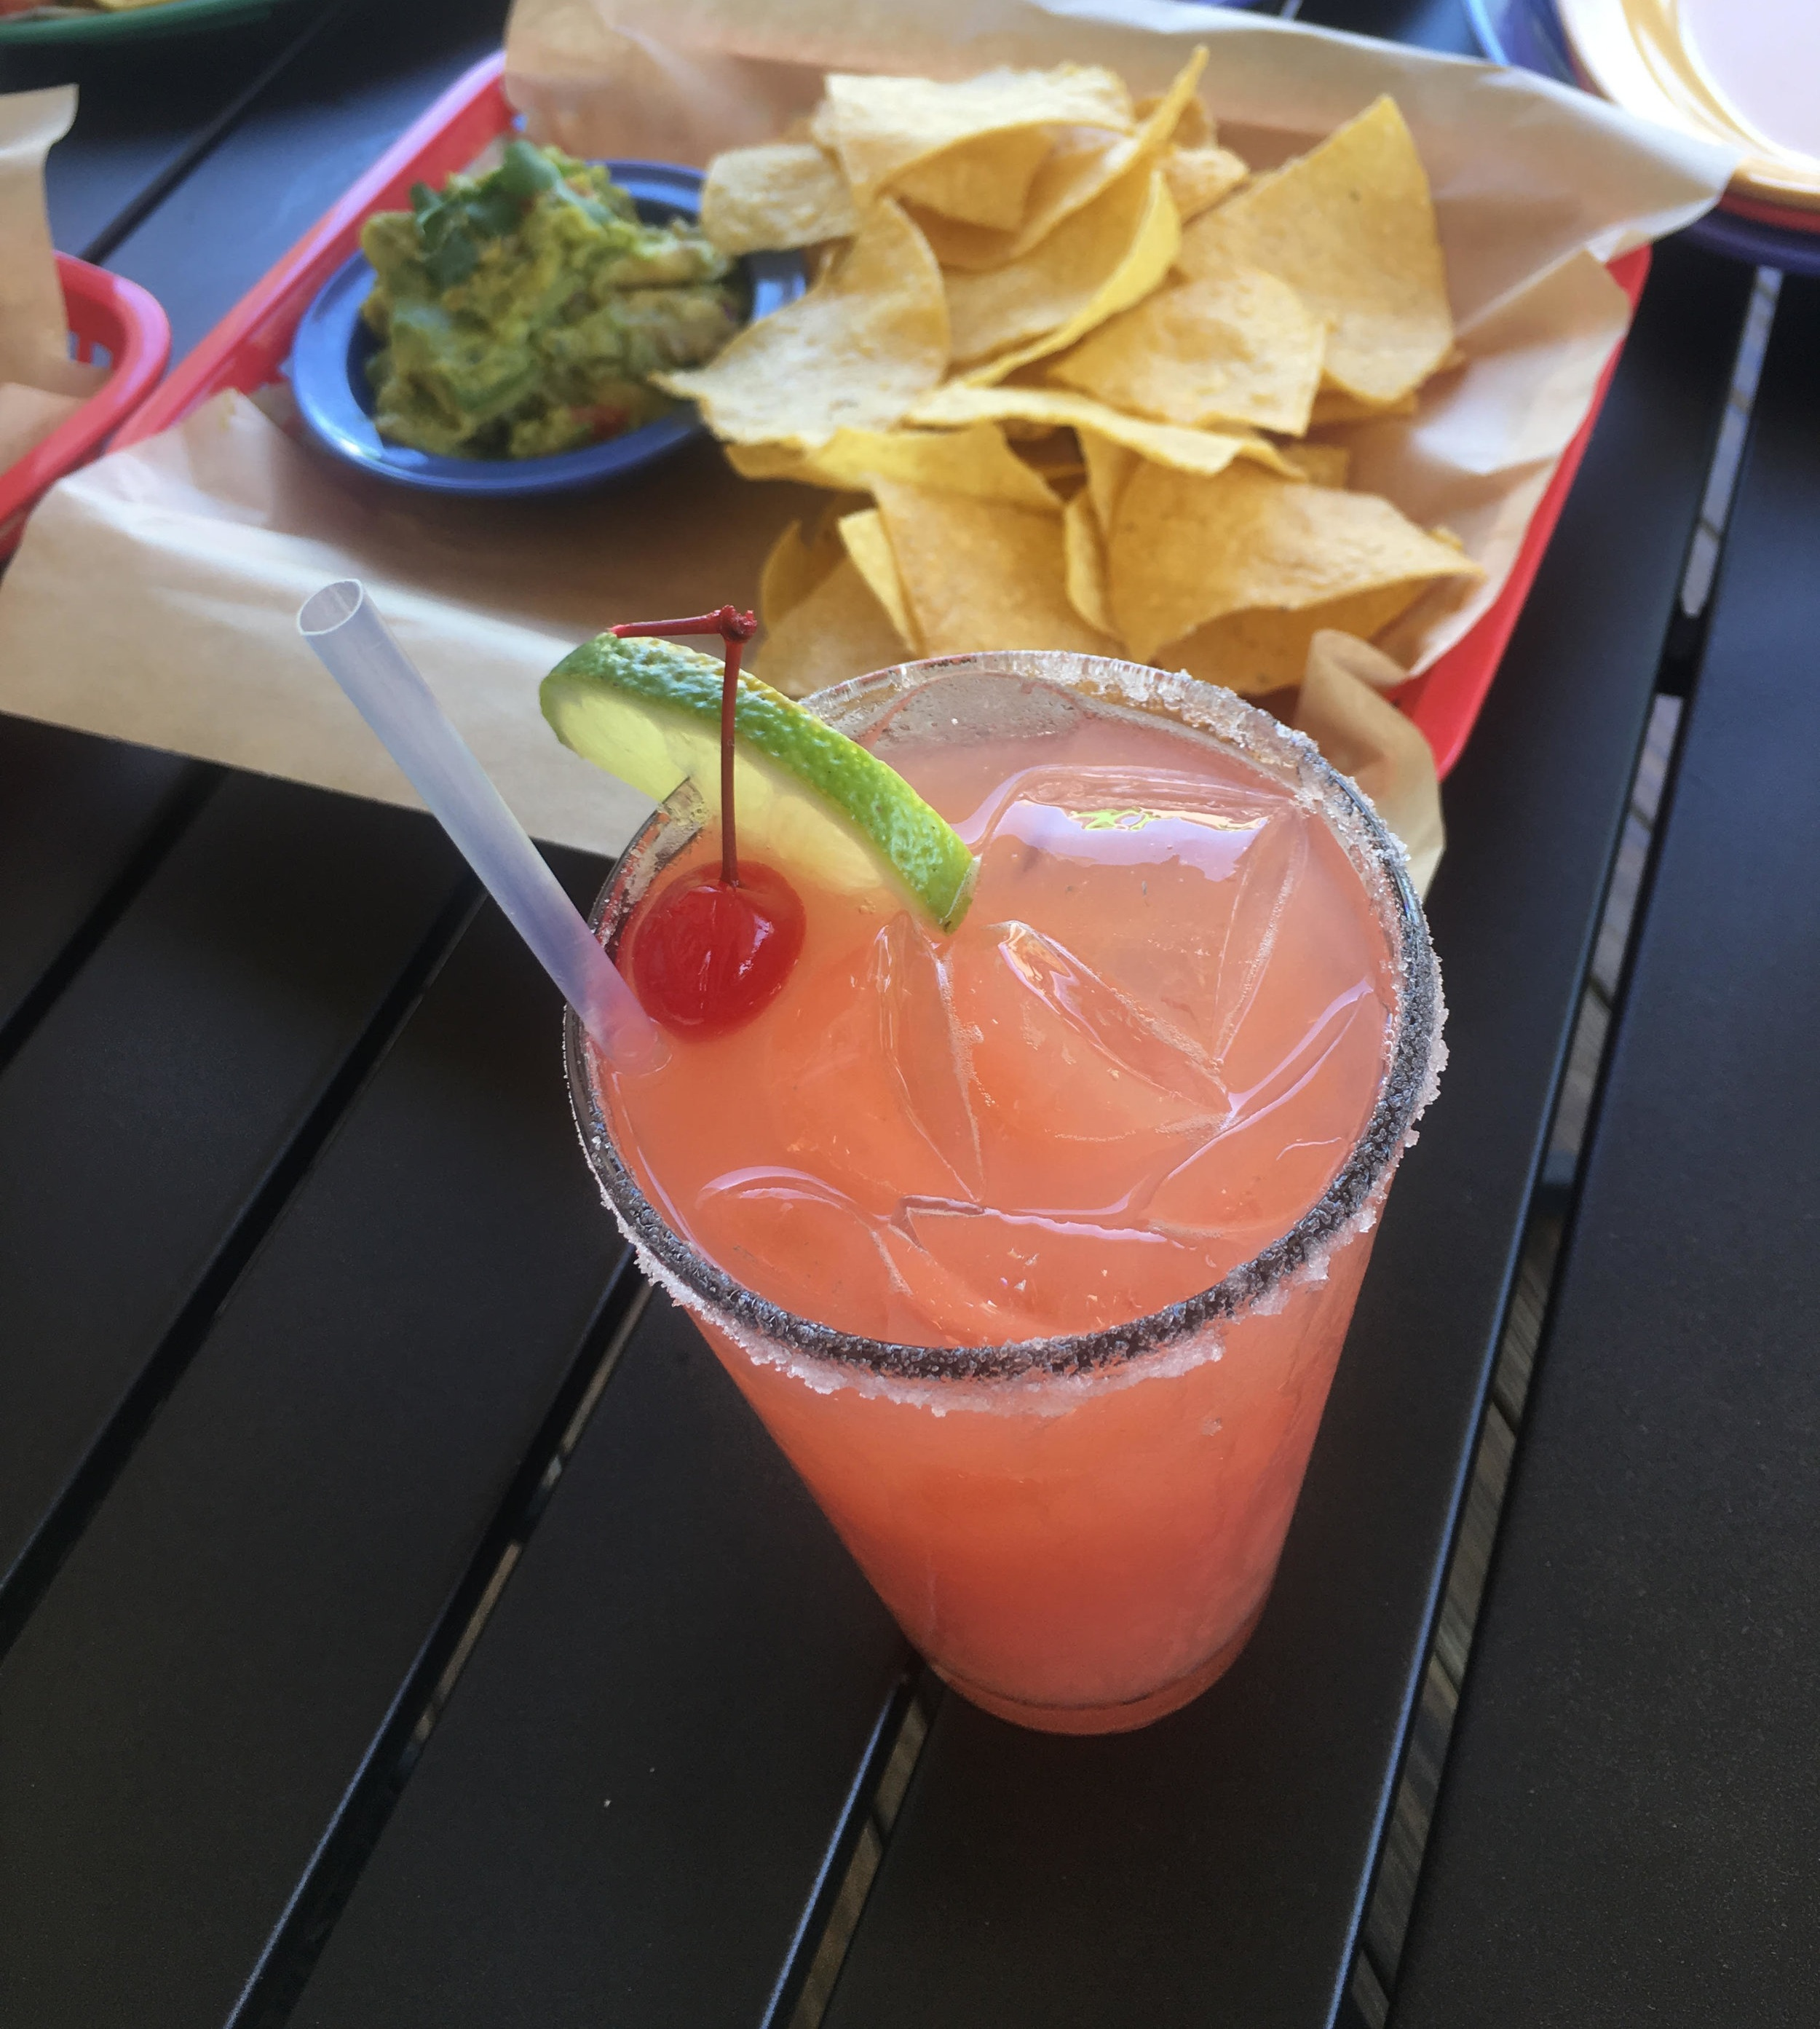 Not a salad, but it is one beautiful margarita from E&o Taco